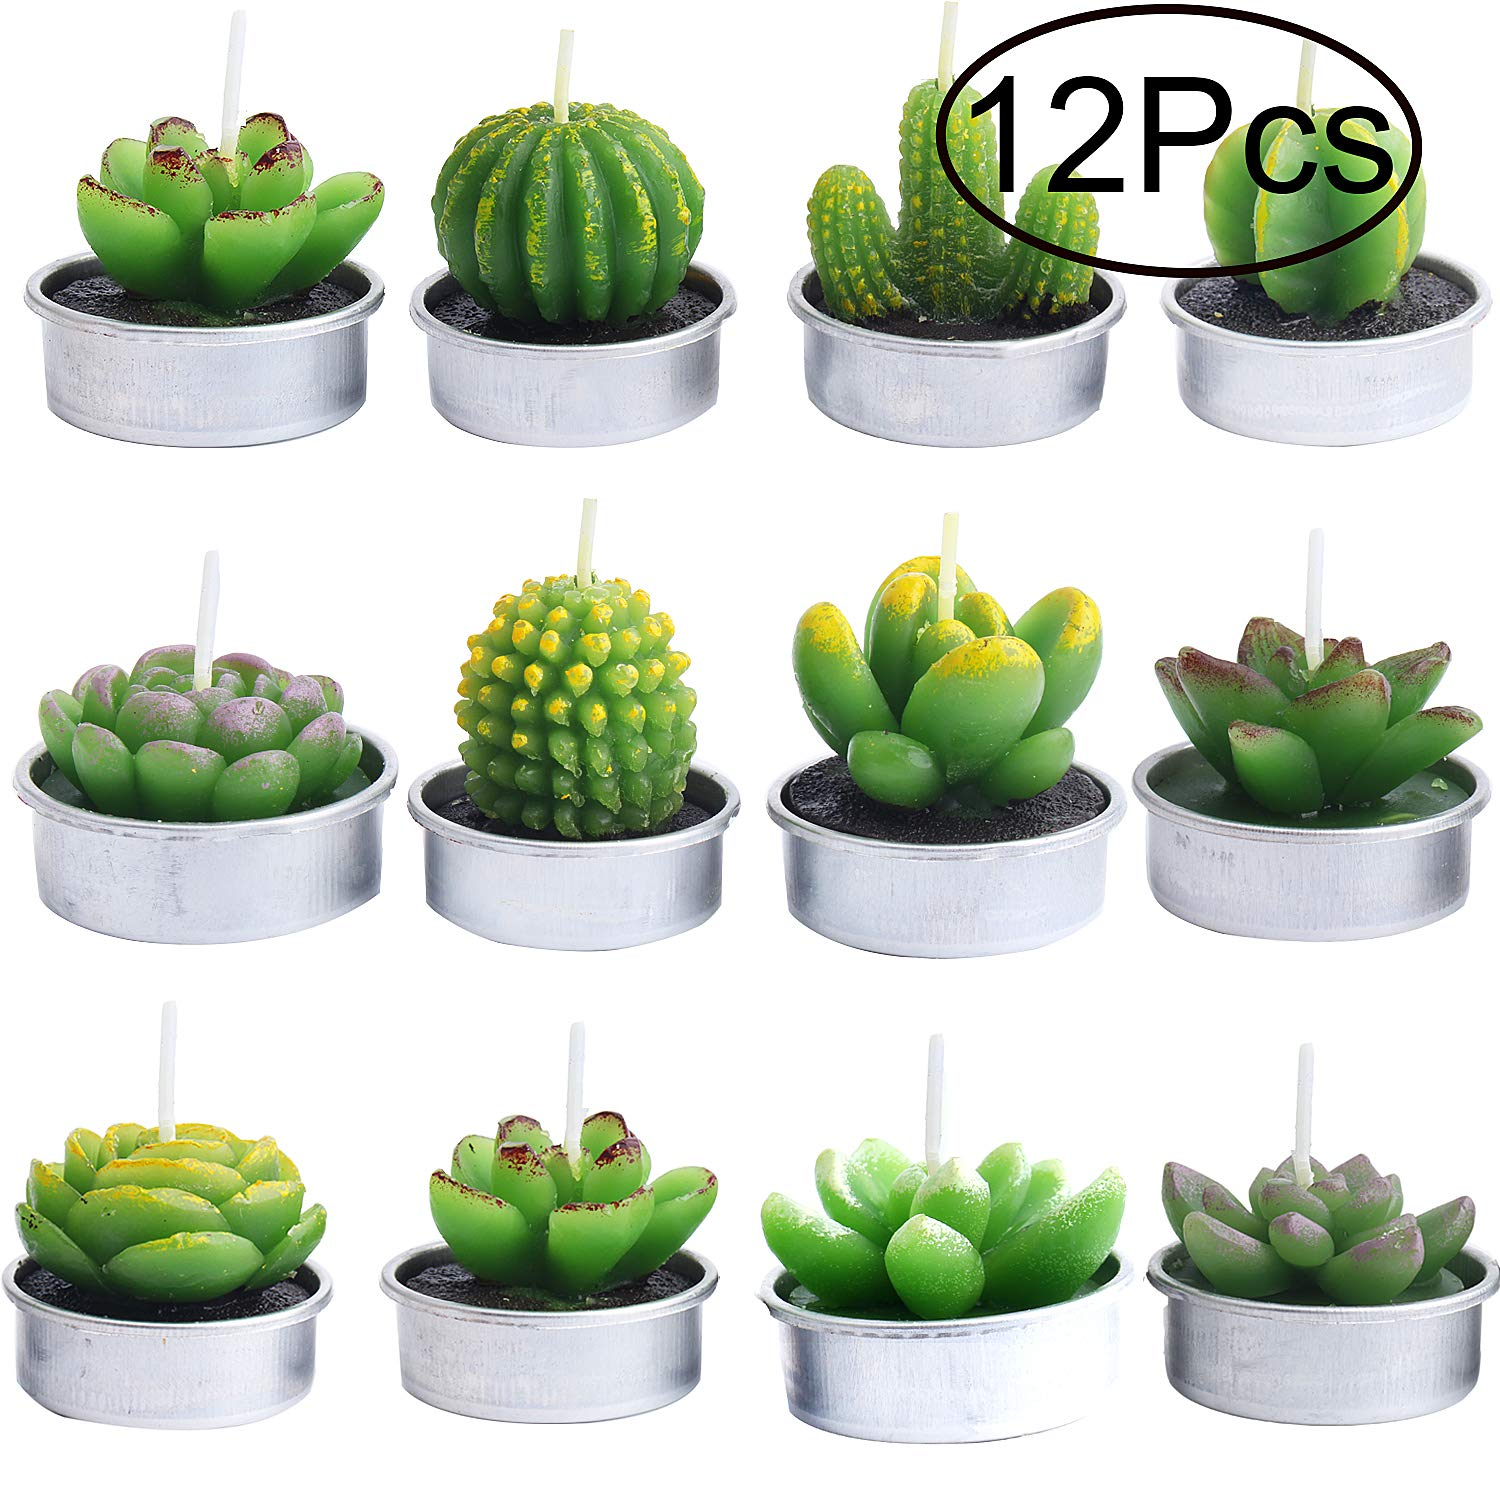 Outee Cactus Tealight Candles, 12 Pack Handmade Delicate Succulent Cactus Candles Flameless Aromatherapy 12 Designs for Birthday Party Wedding Spa Home Decoration